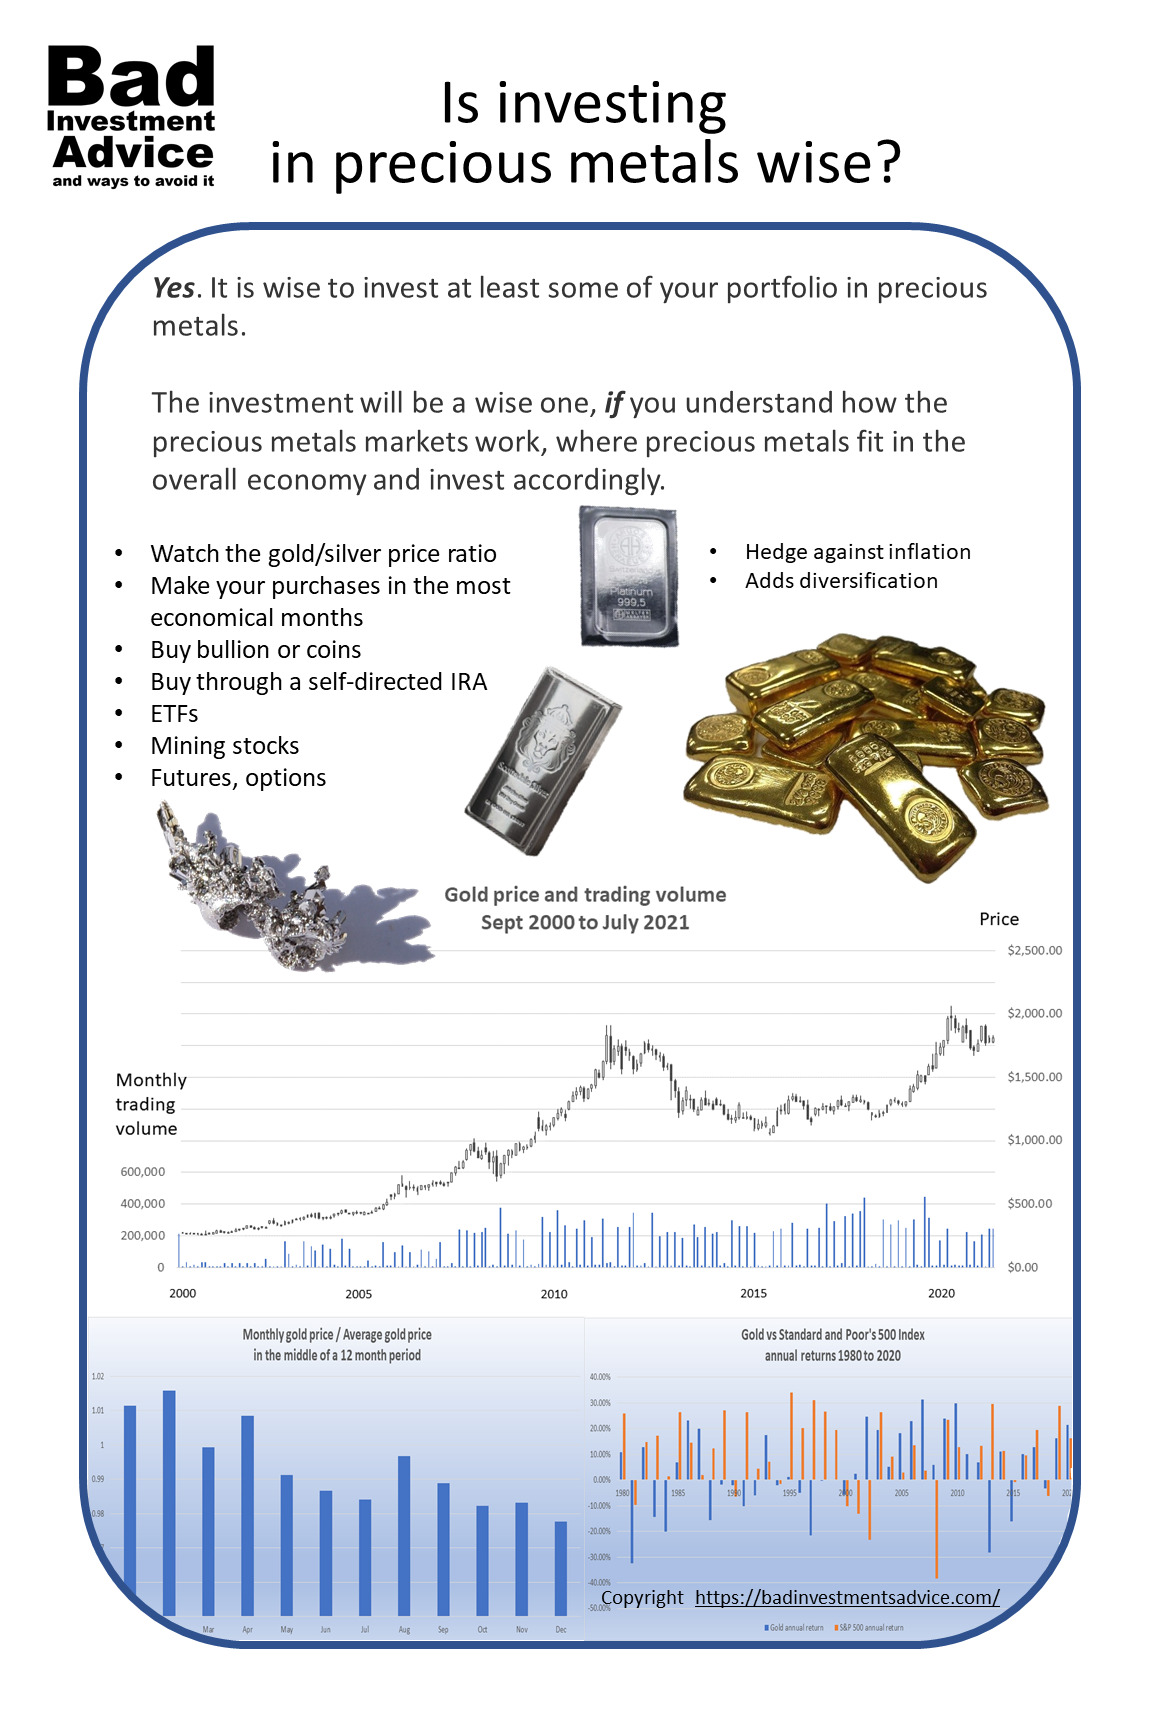 Is investing in precious metals wise - summary